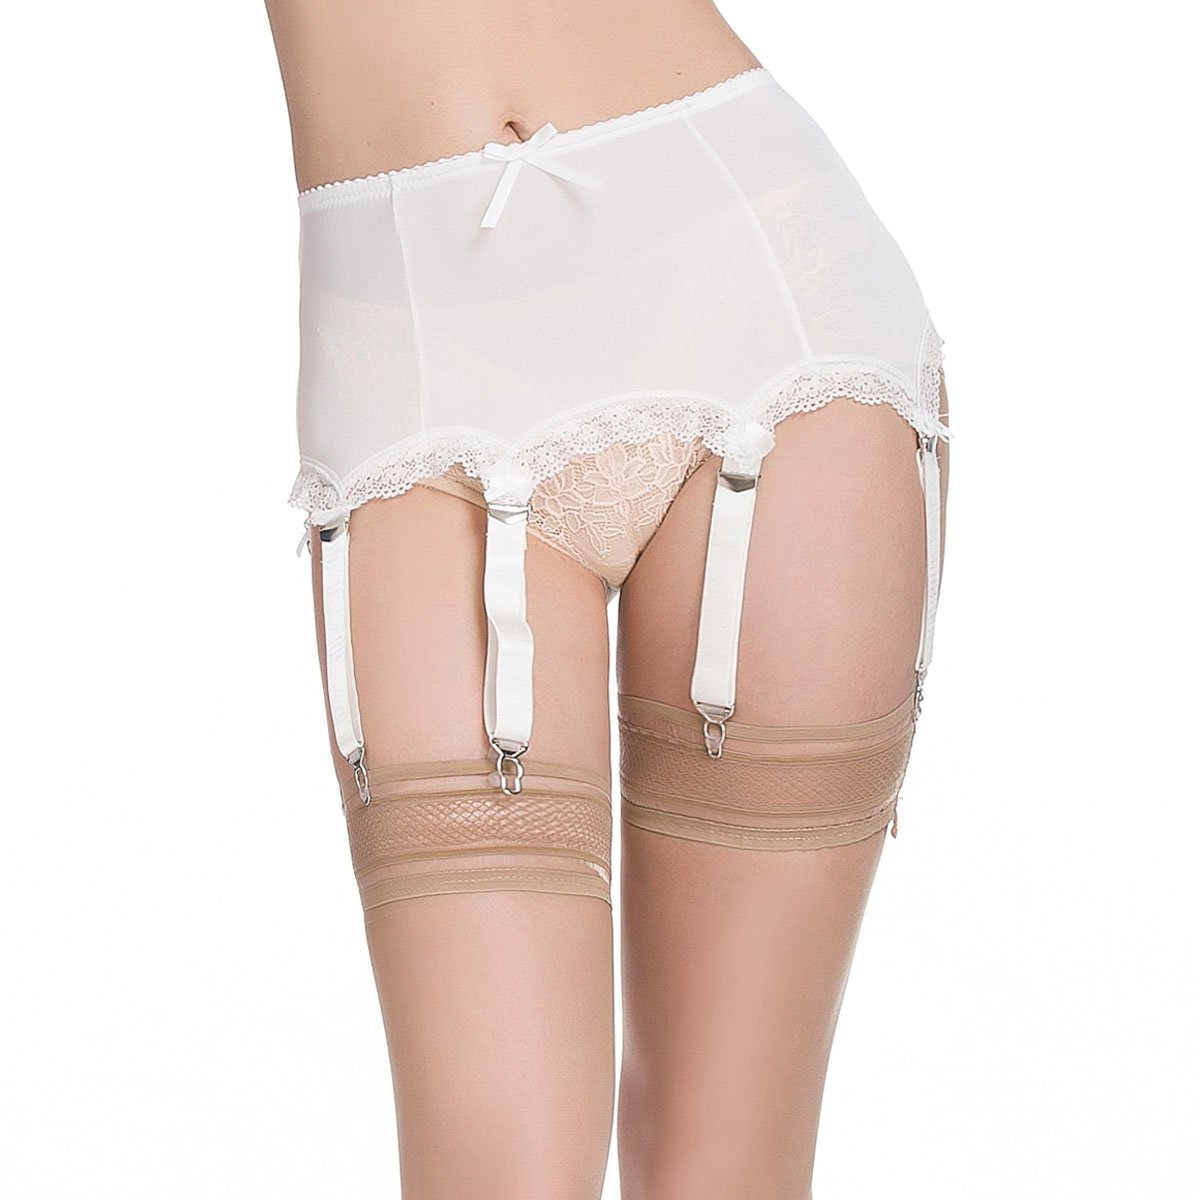 0da9ef33040 Top 10 wholesale Ivory Garter Belt - Chinabrands.com